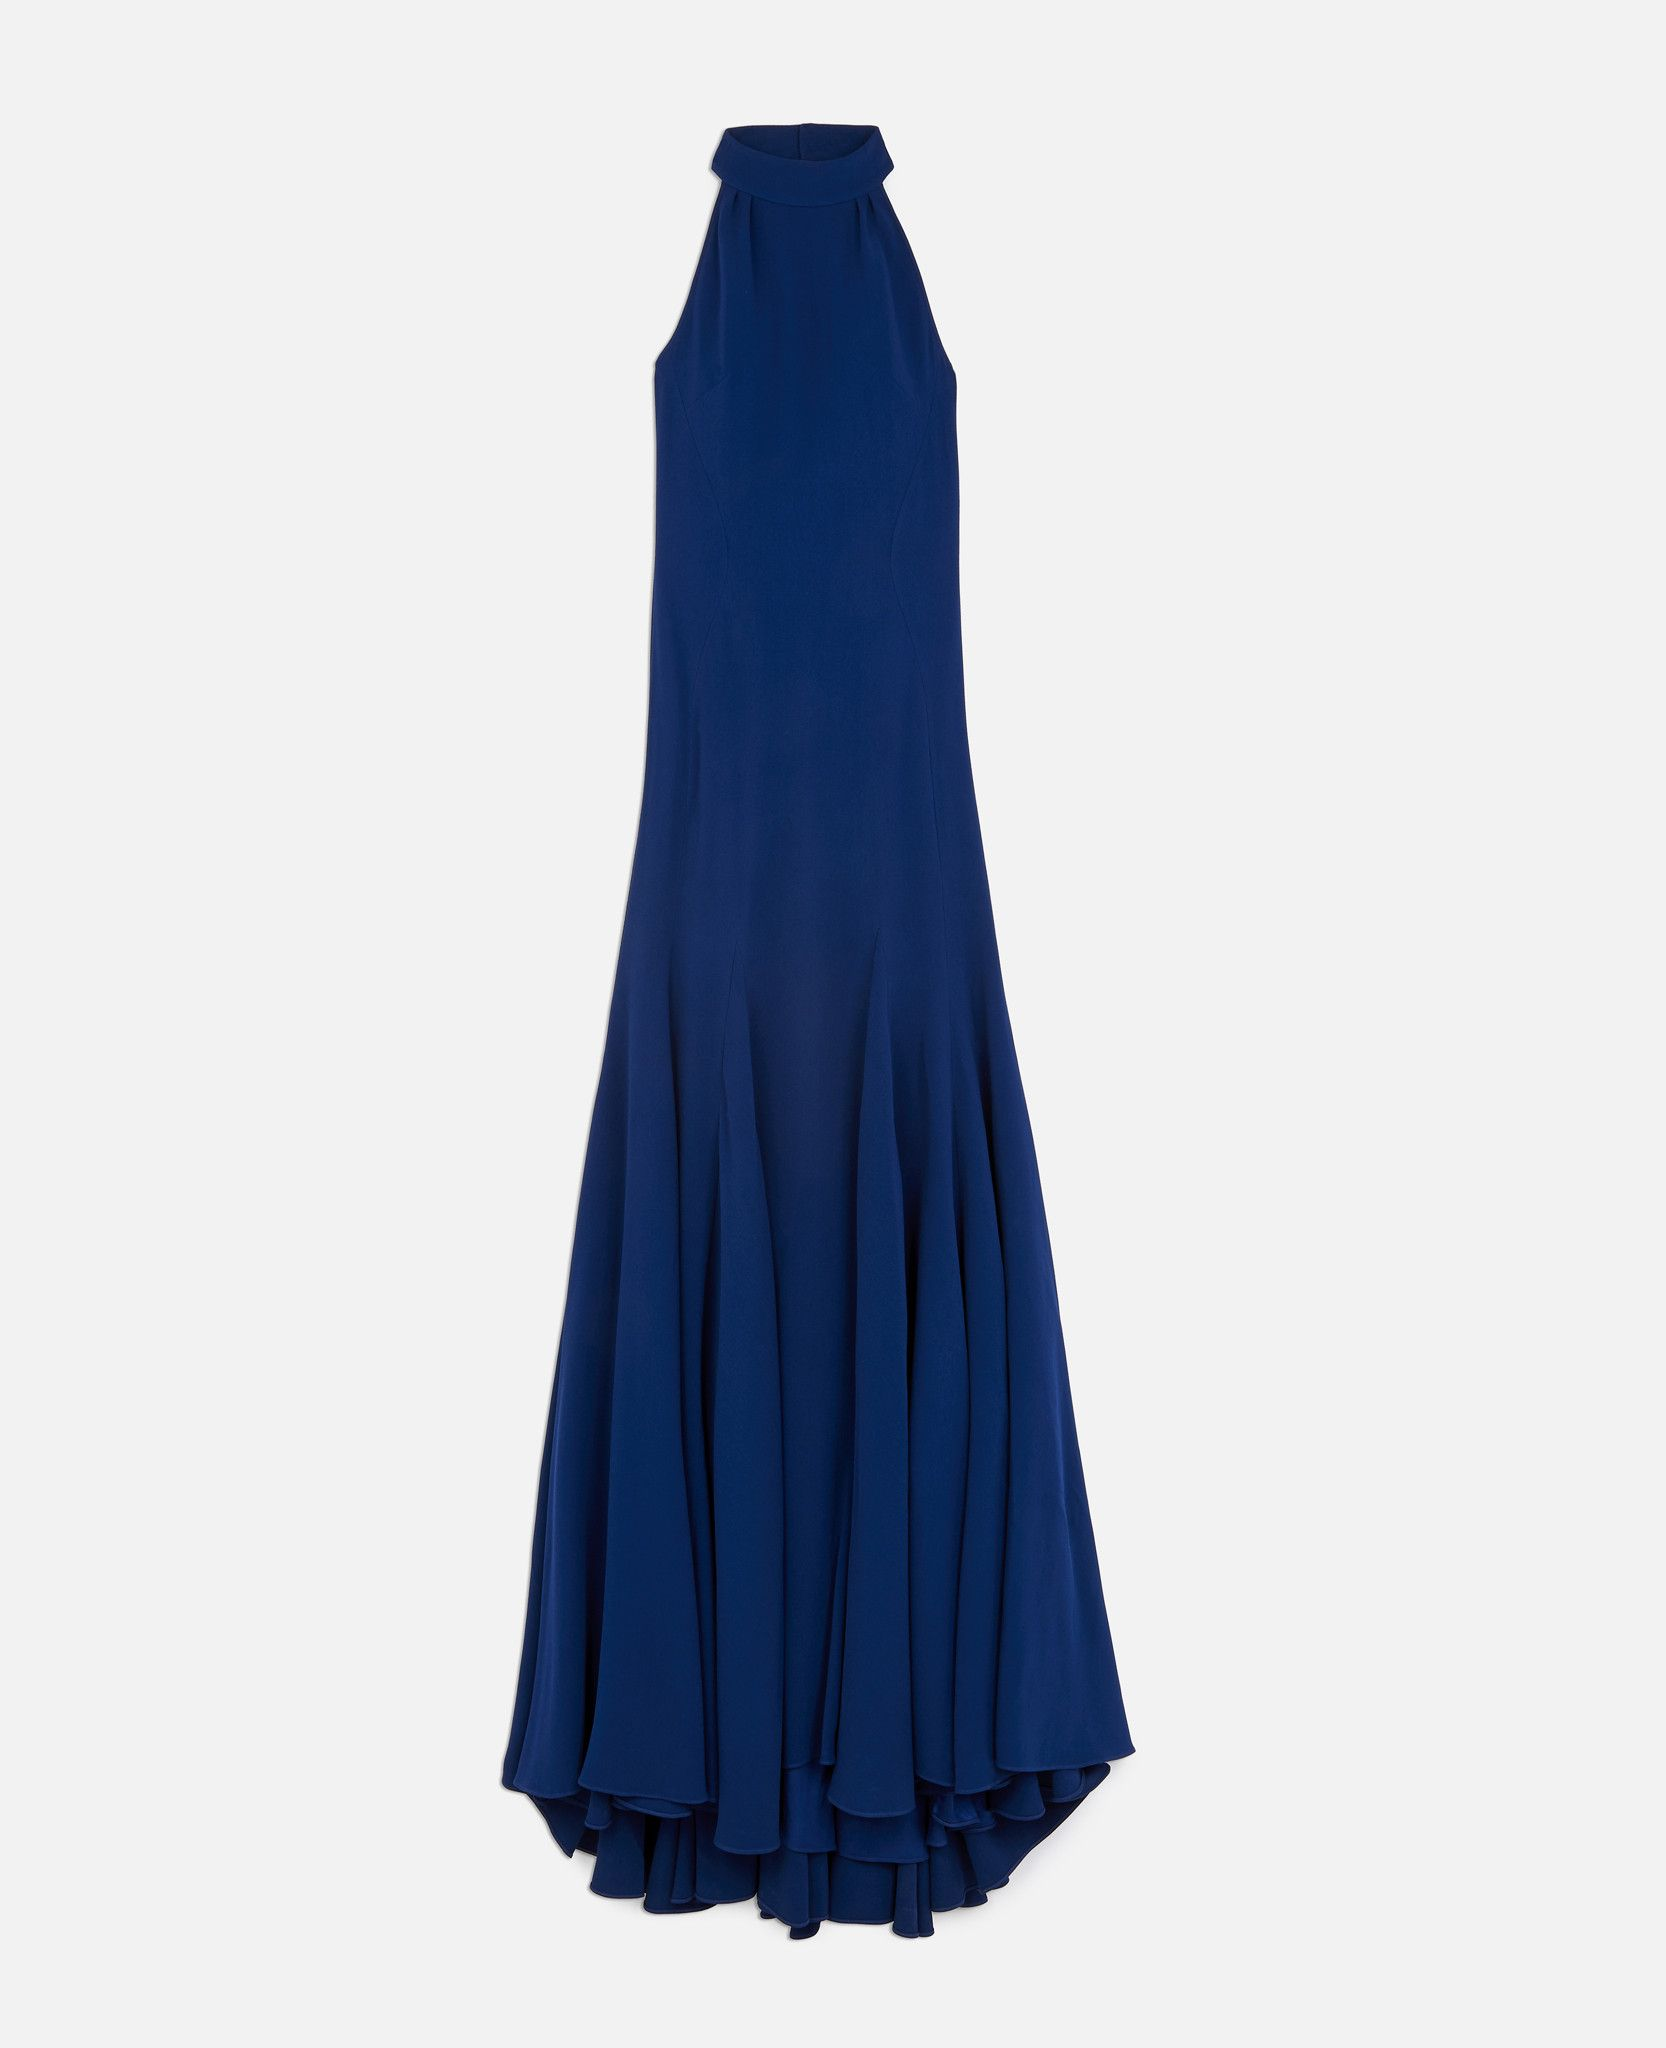 stella-mccartney-evening-gown-meghan-markle-wedding-dress